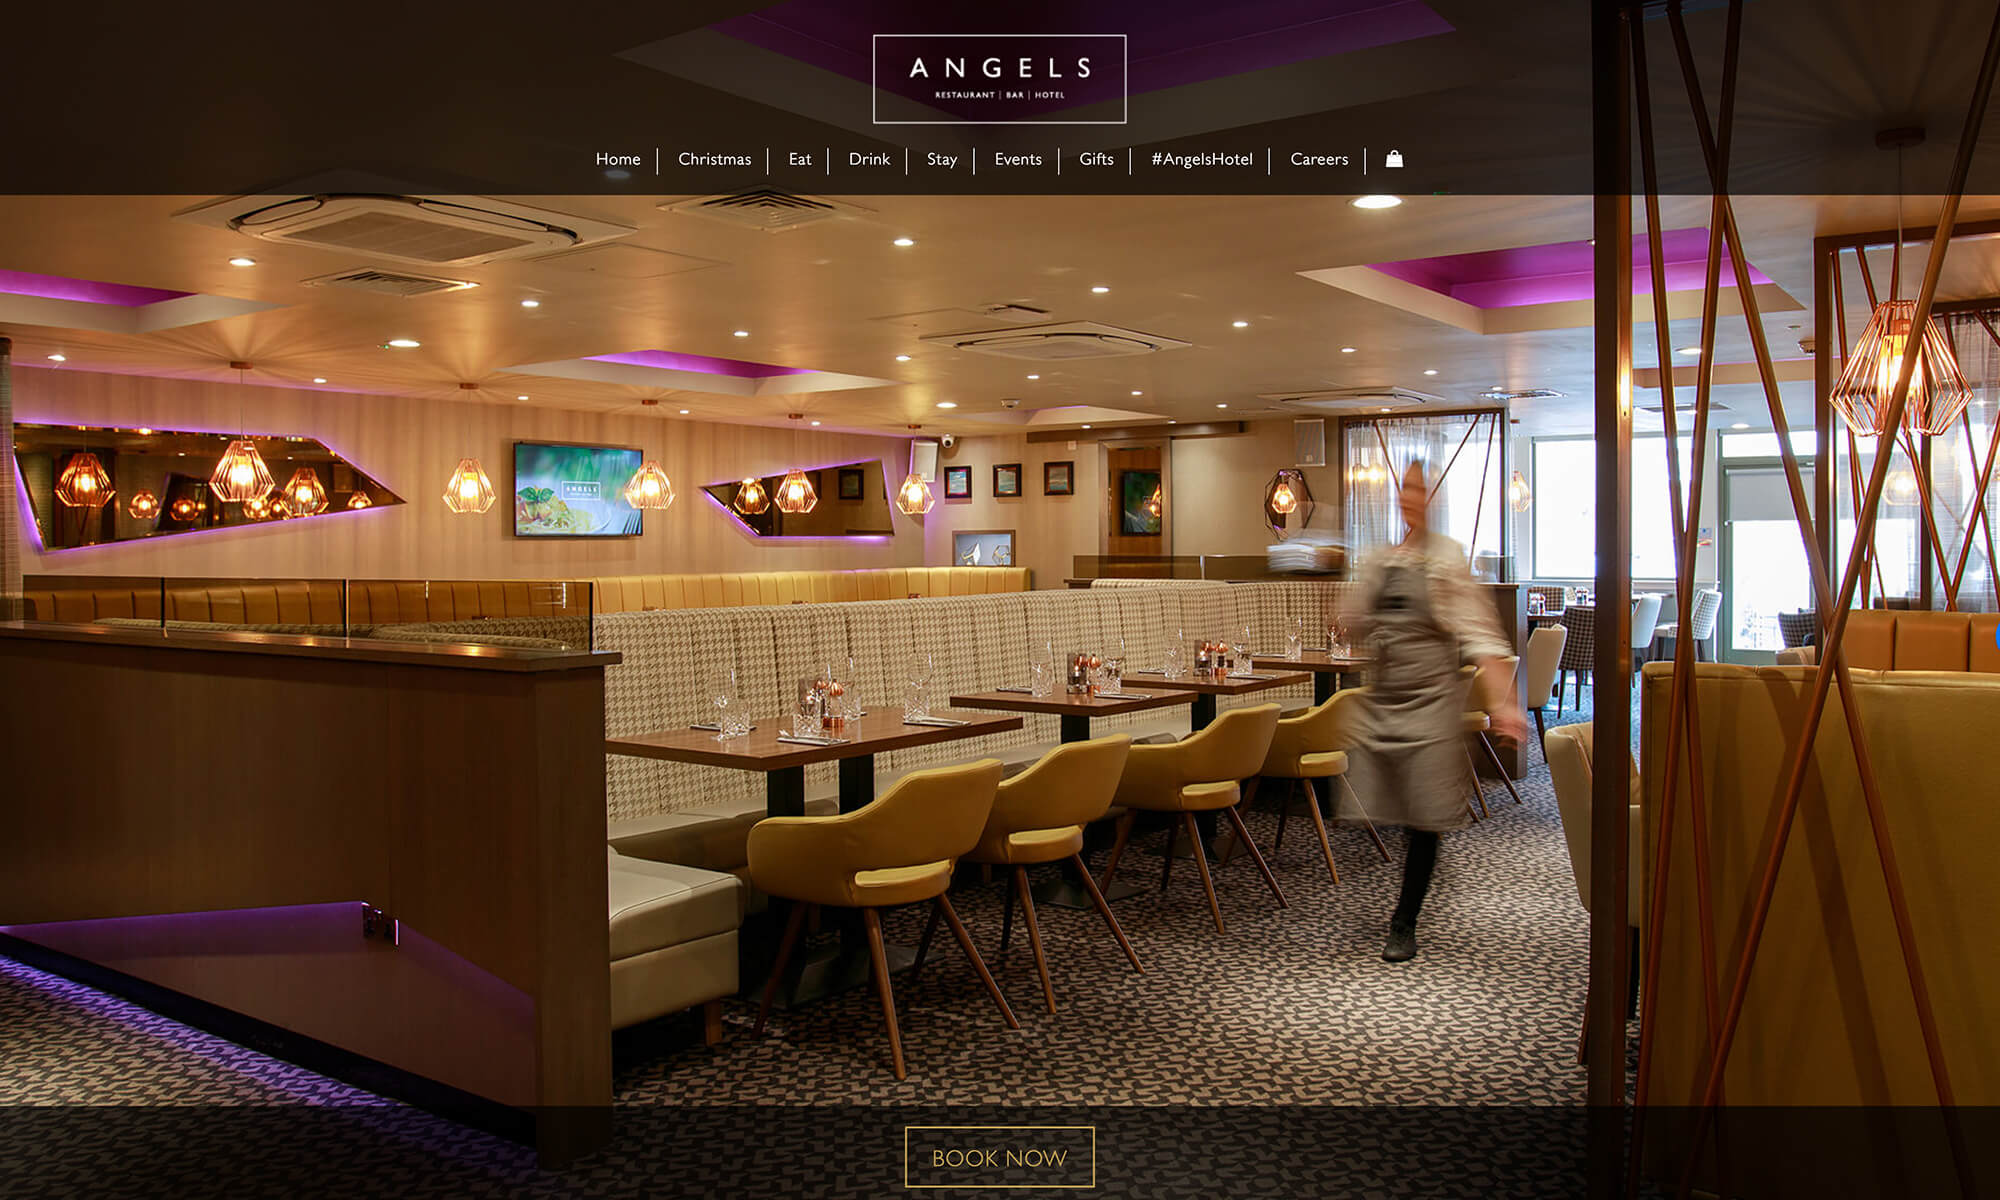 Angels Hotel Uddingston website design Boca